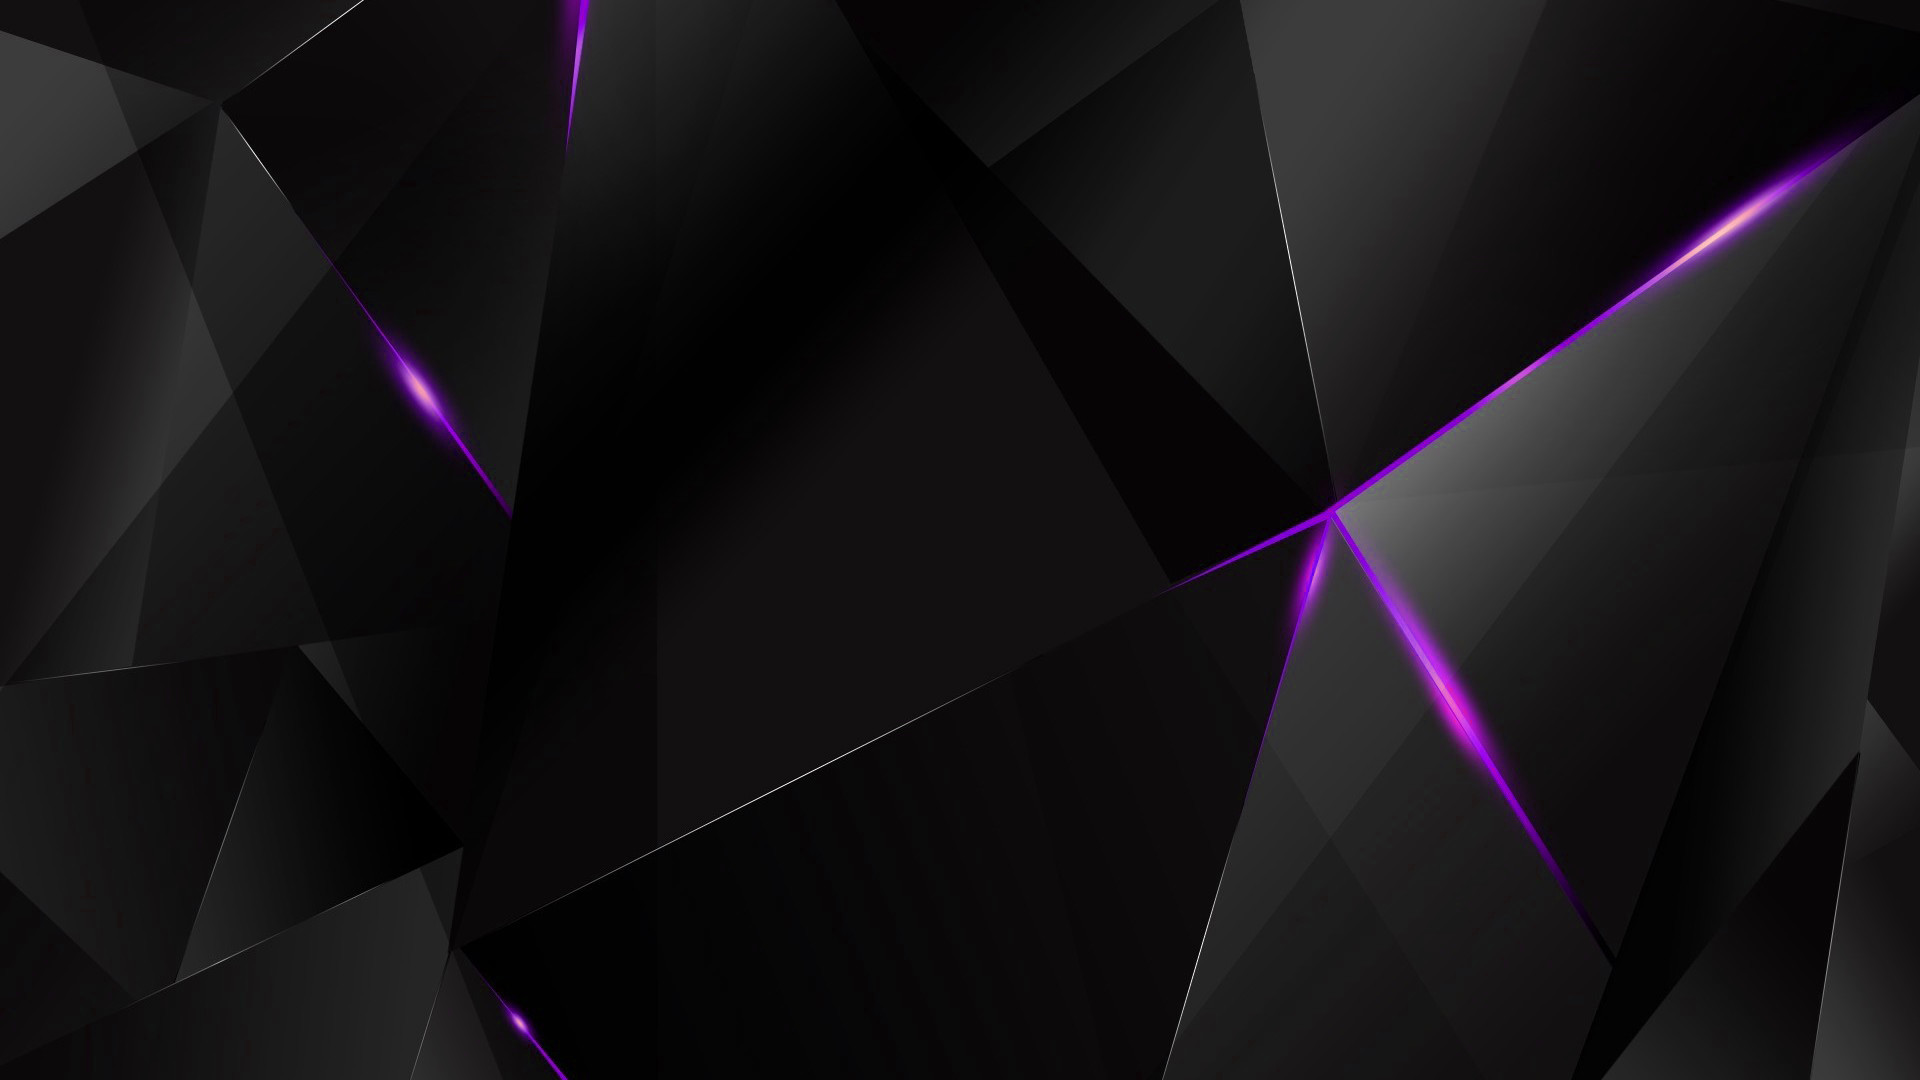 1920x1080 ... Wallpapers - Purple Abstract Polygons (Black BG) by kaminohunter